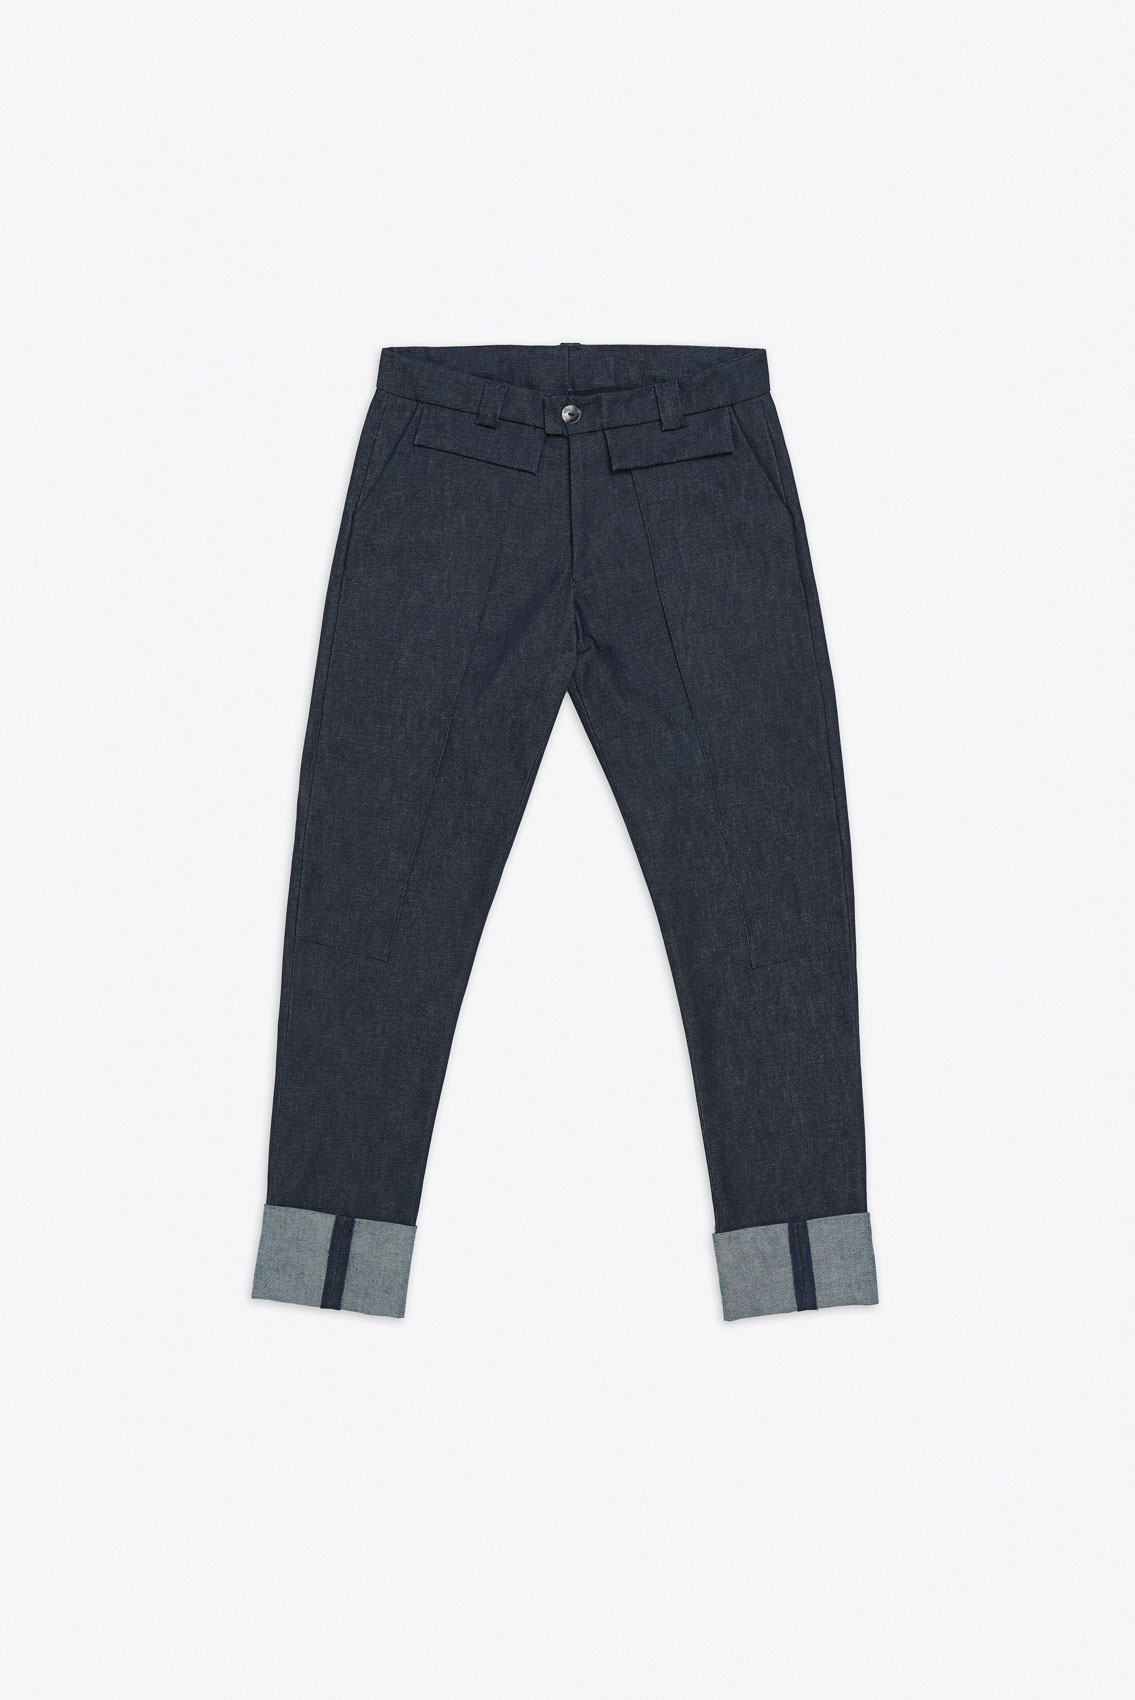 DOUBLE LEG OVERLAY DENIM TROUSERS